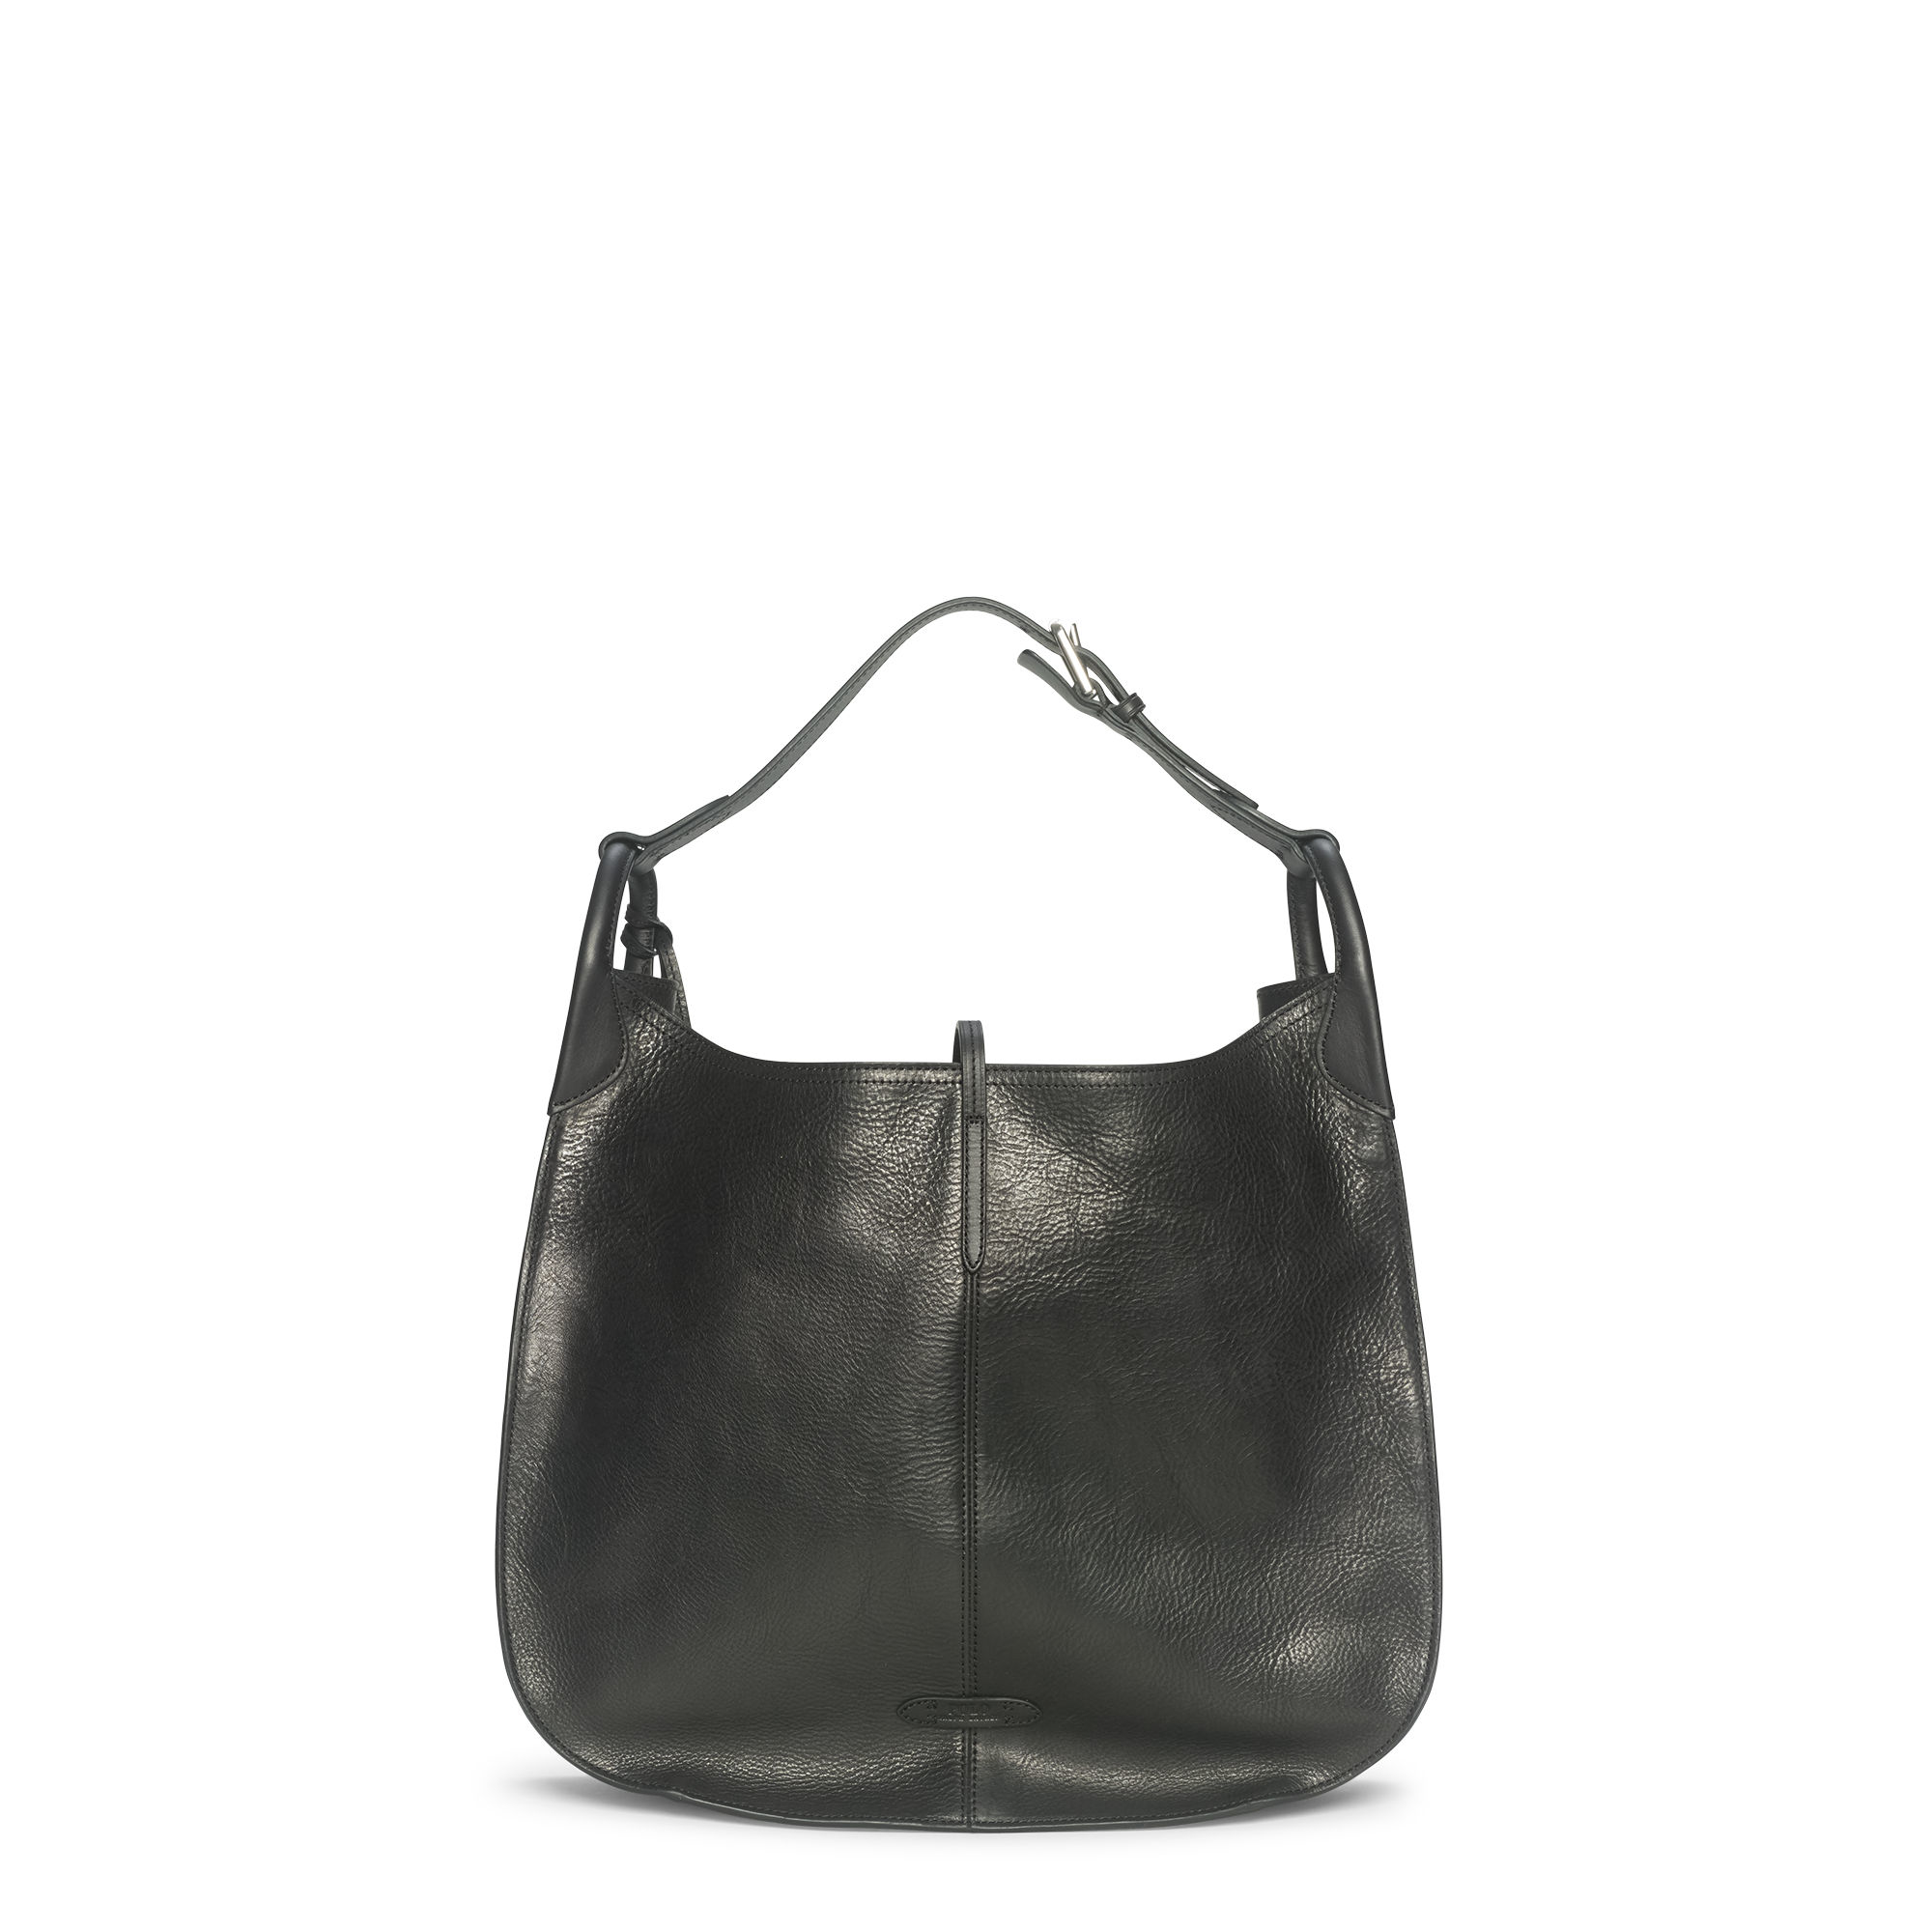 ... Polo Ralph Lauren Tumbled Leather Hobo Bag in Black - Lyst wholesale  dealer acf14 a857f . ... 0f105e2d8a9e